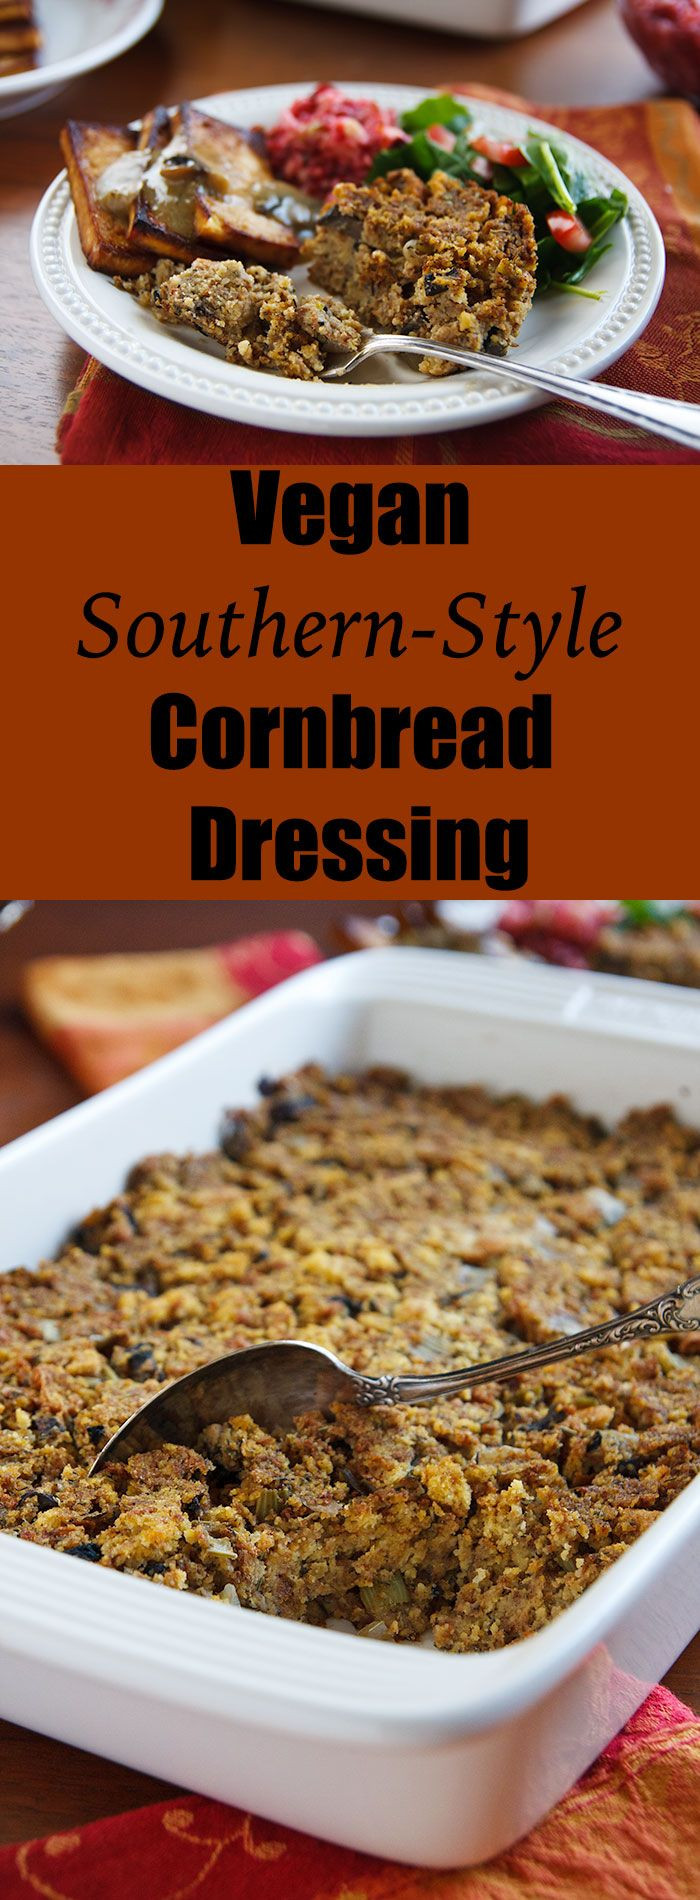 Vegan Thanksgiving Dressing  Vegan Southern Style Cornbread Dressing Recipe